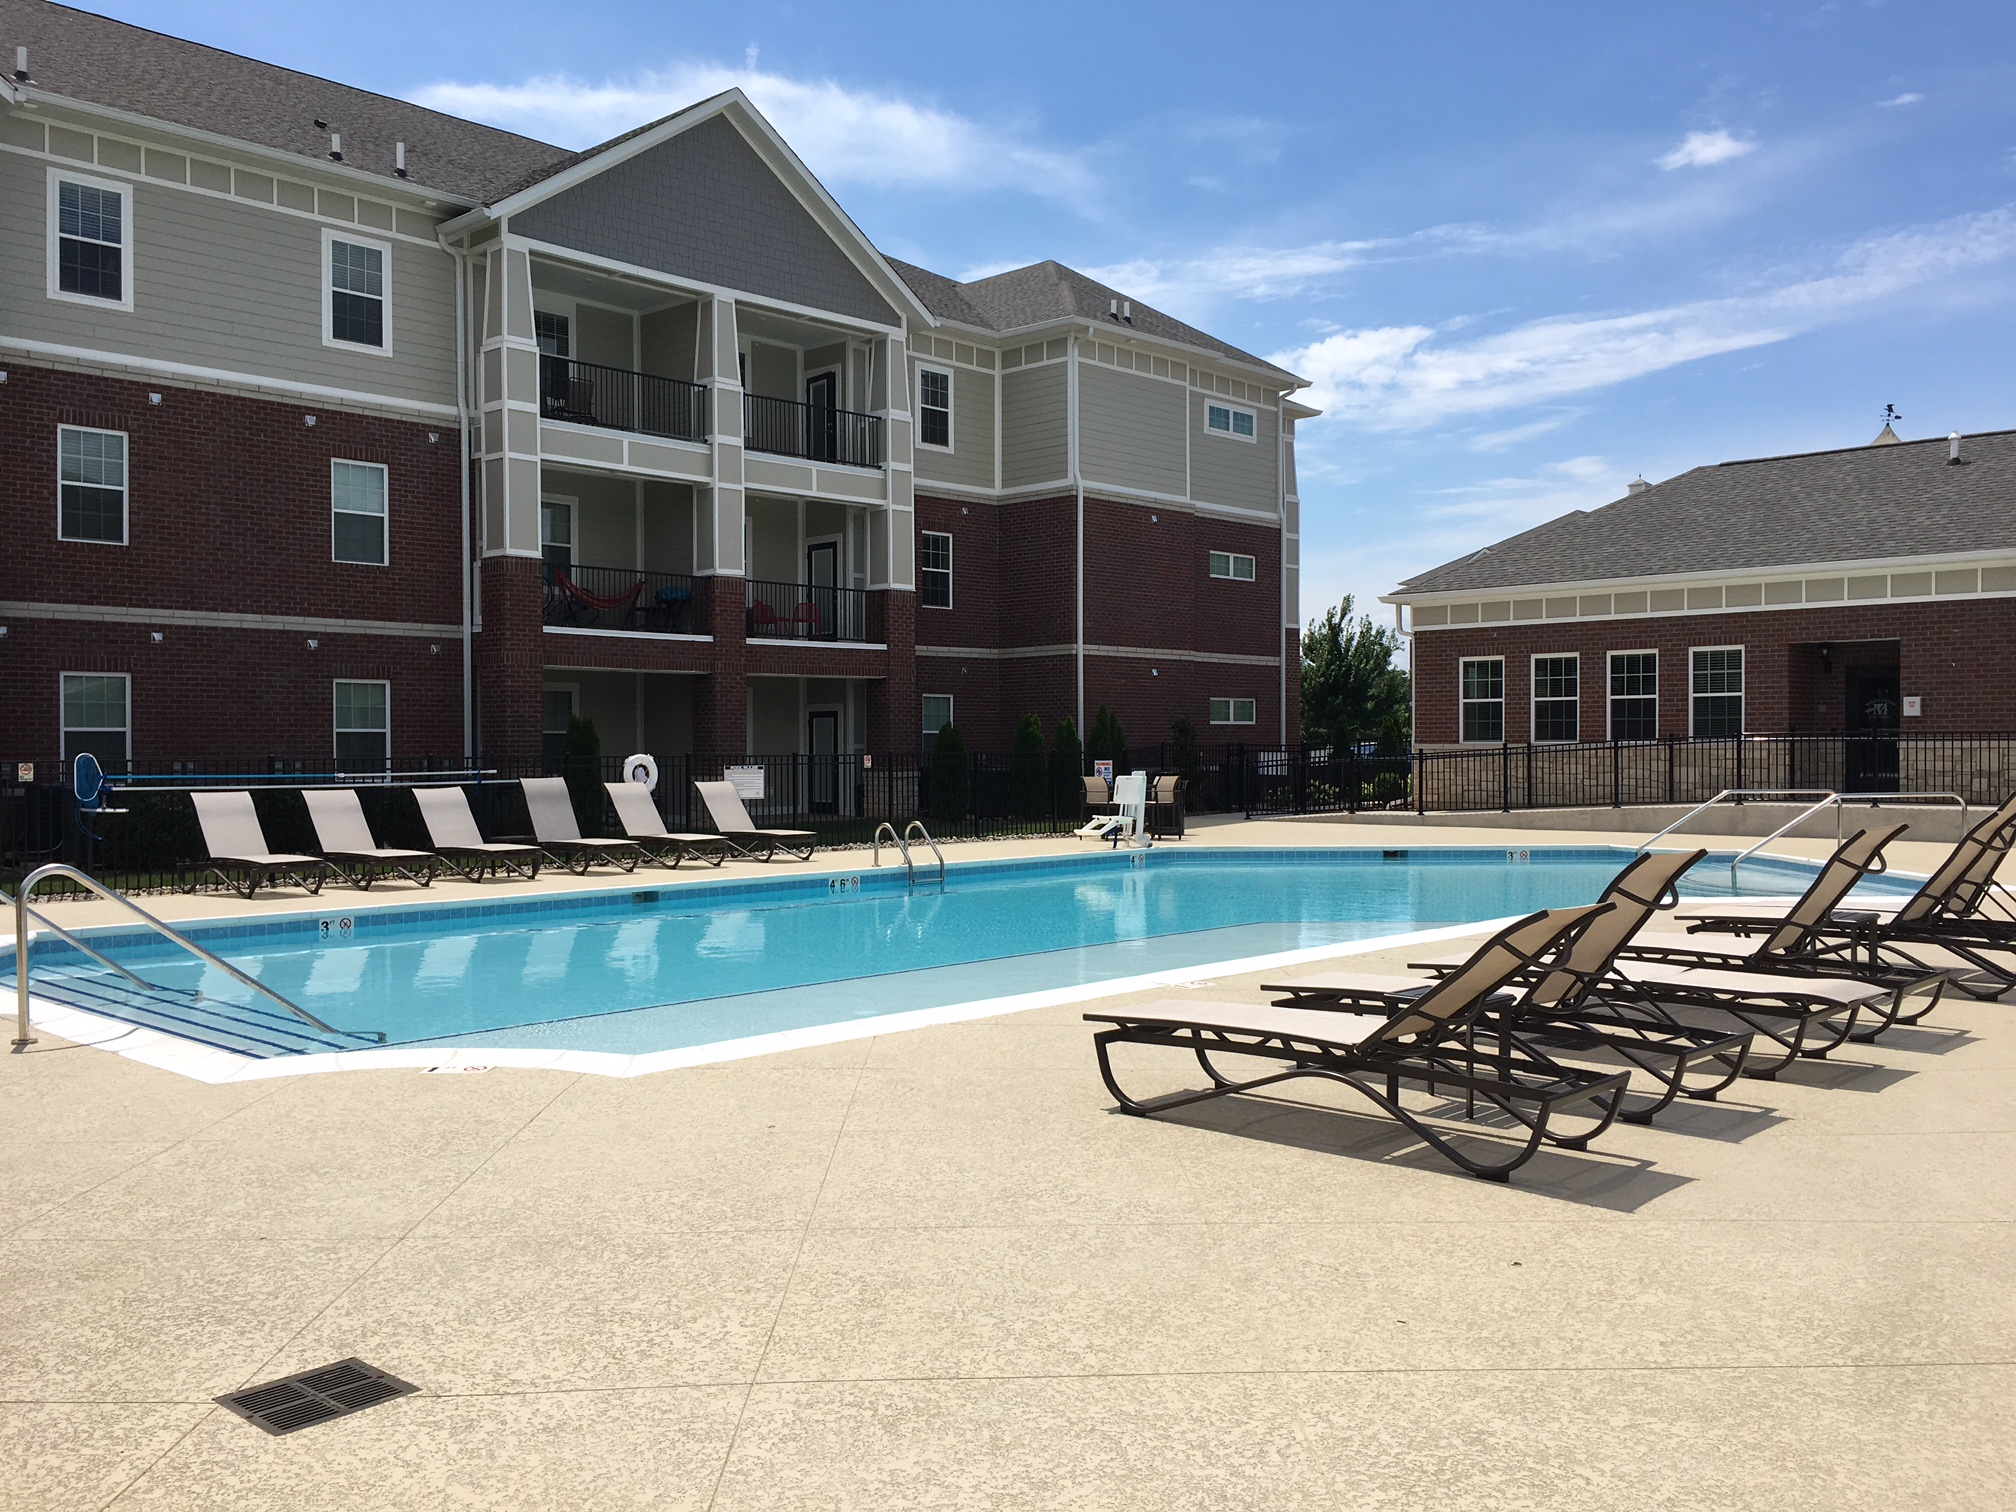 Mount Victor Olde Towne apartments Bowling Green KY new pool and deck